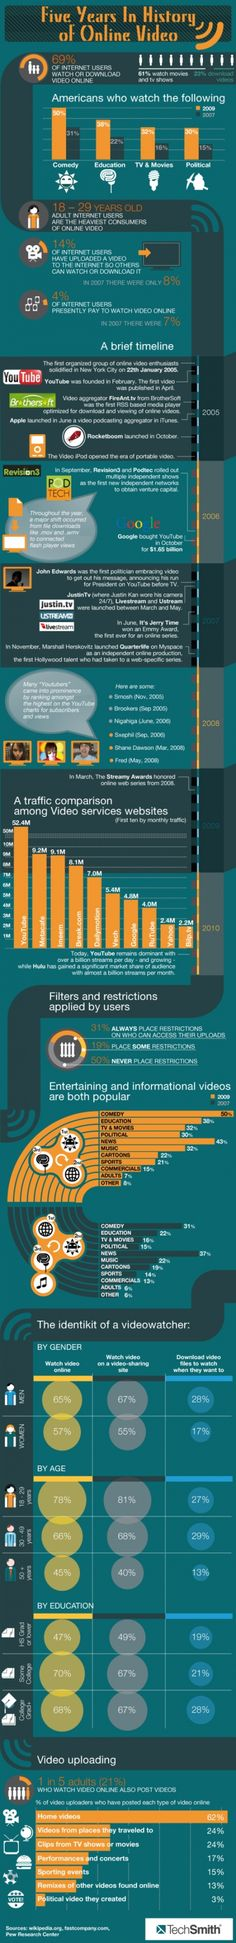 The History of Online Video